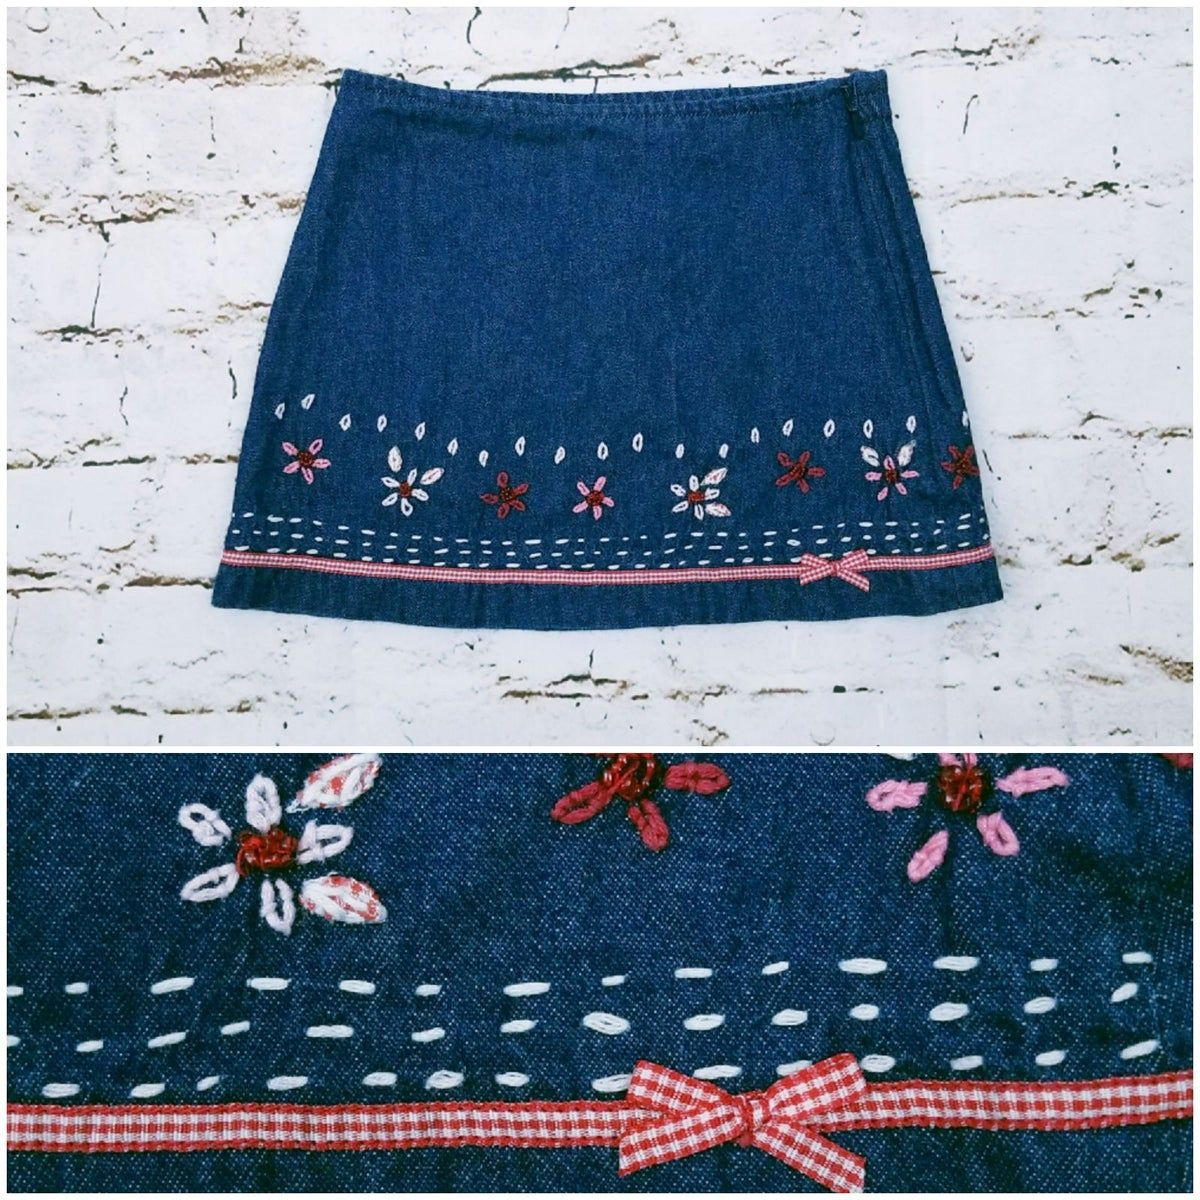 This is from a European designer, made in France. Dark denim Chambray skirt with embroidered flowers and ribbon detail. Side zipper for easy on/off. I see no issues with this. Smoke free pet friendly home. Search Cctreasure to see all my listings and bundle to save money!